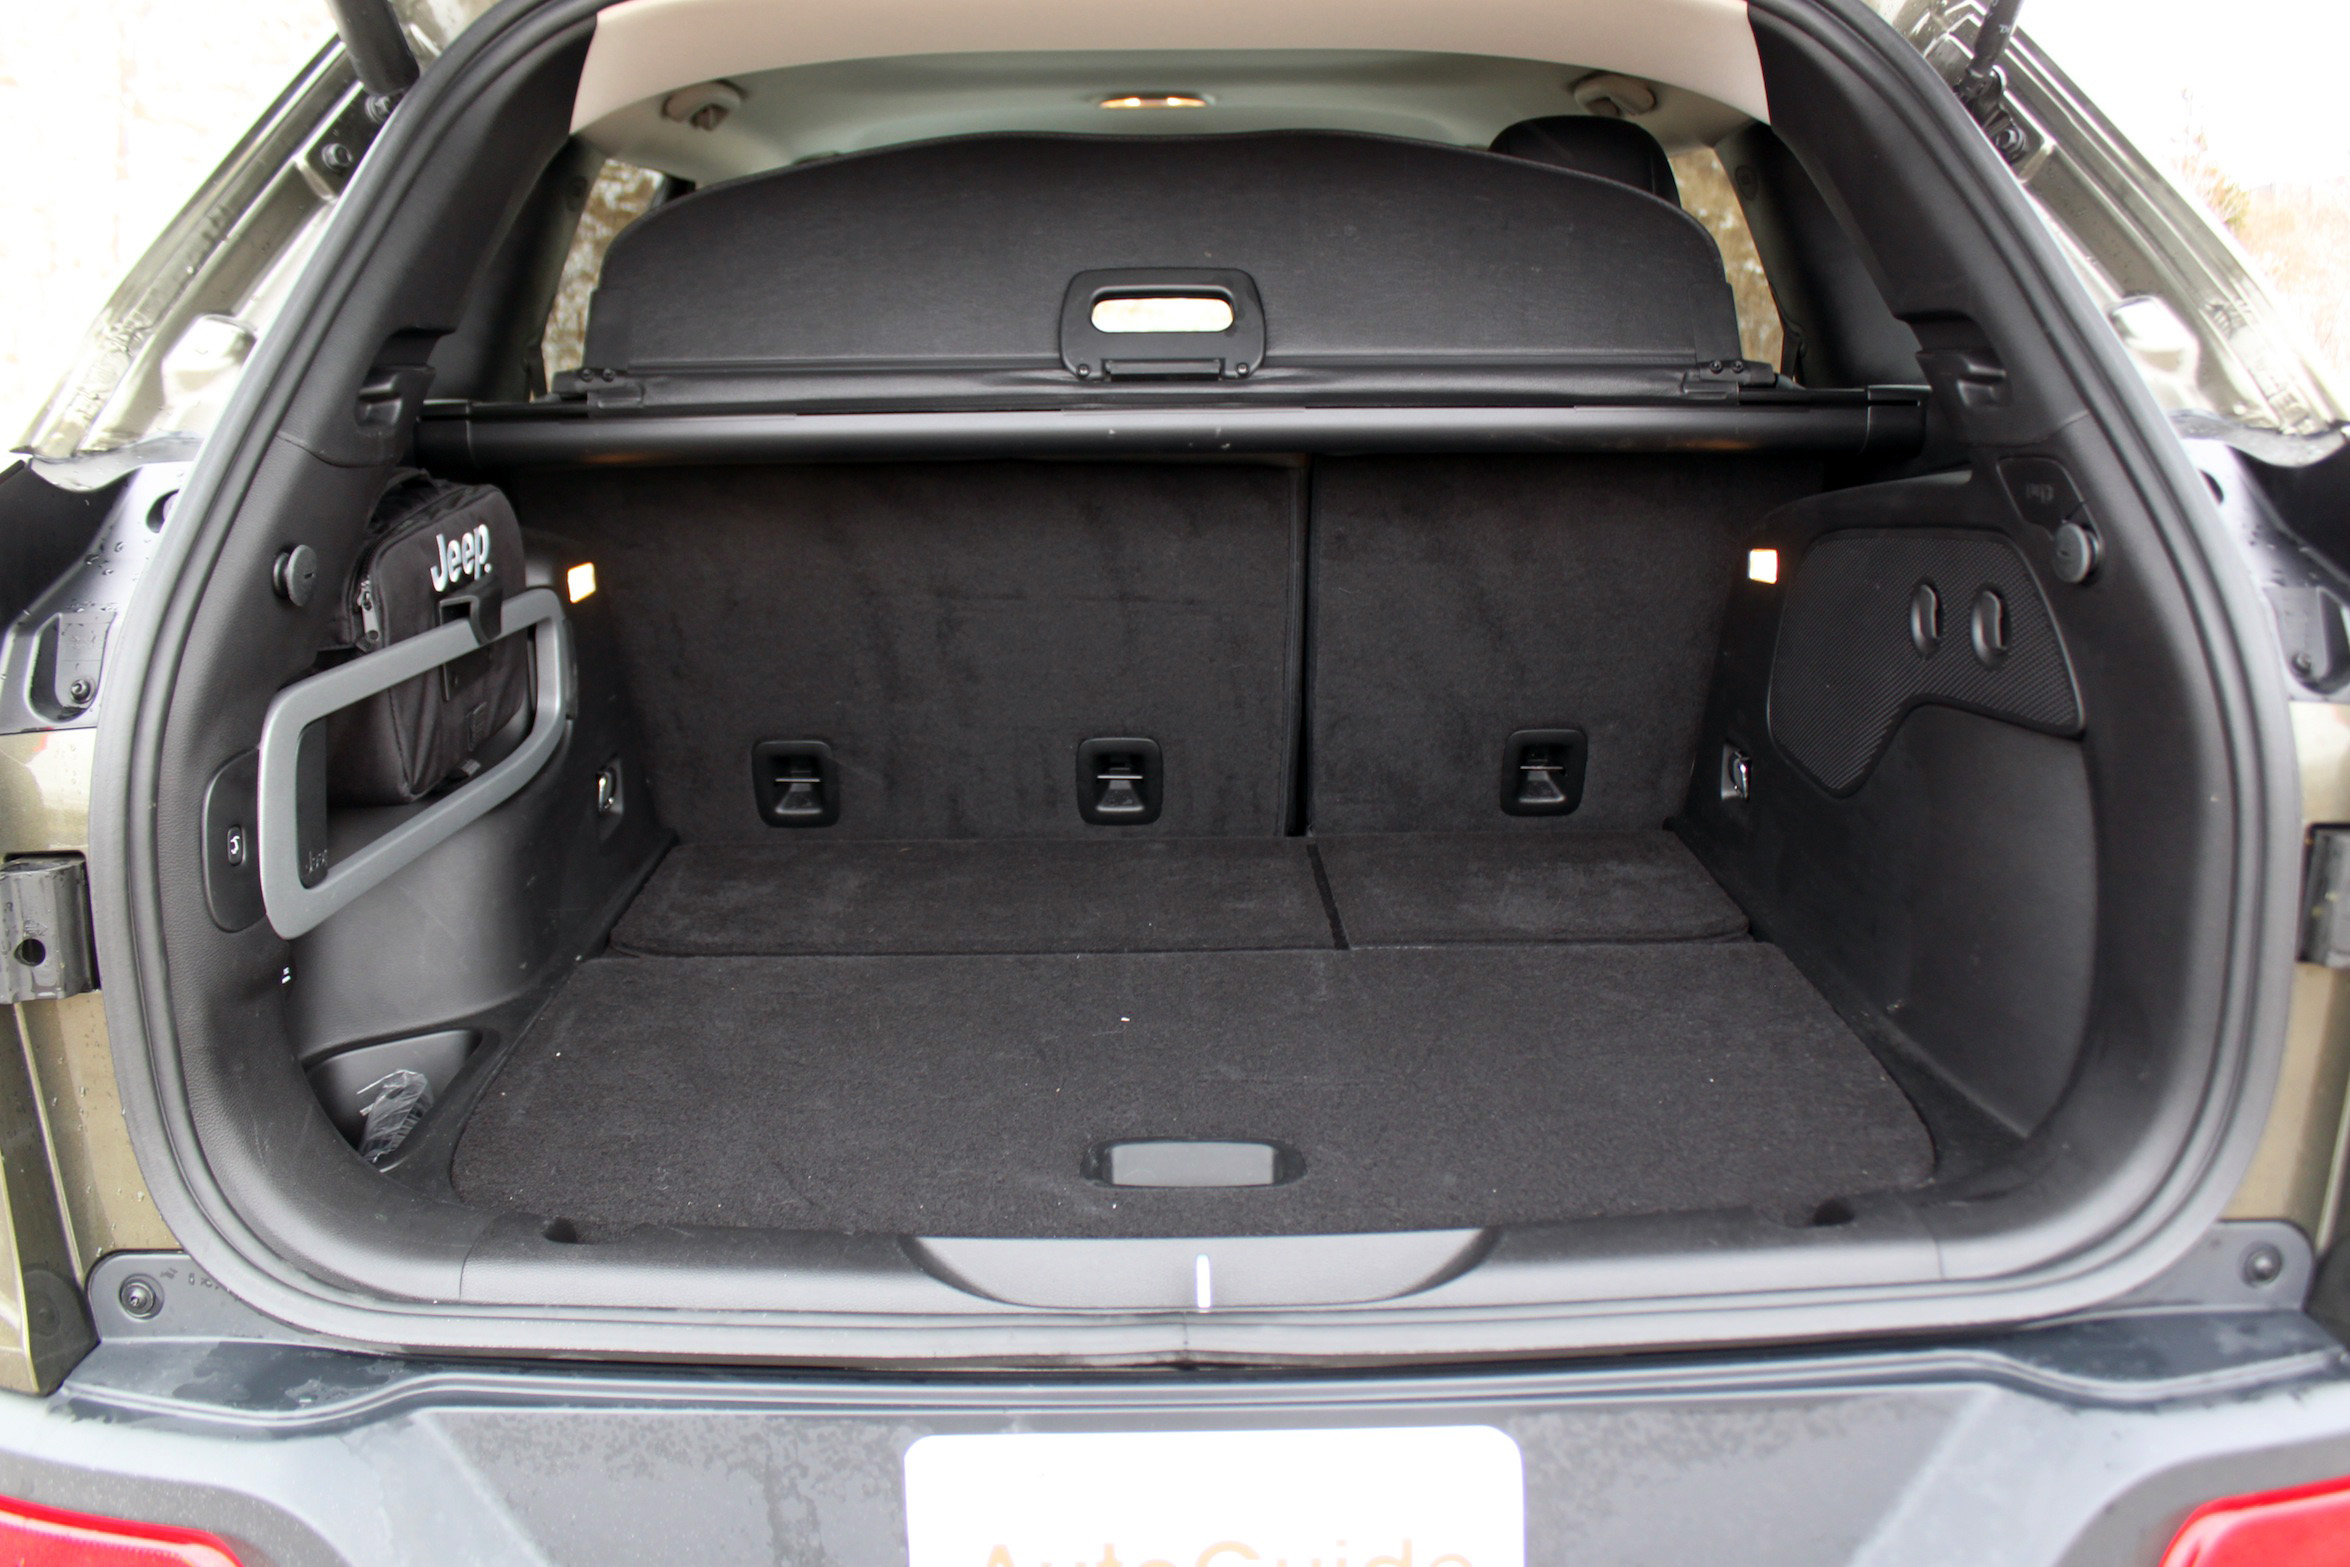 2015 jeep cherokee trailhawk seat cover autos post. Black Bedroom Furniture Sets. Home Design Ideas